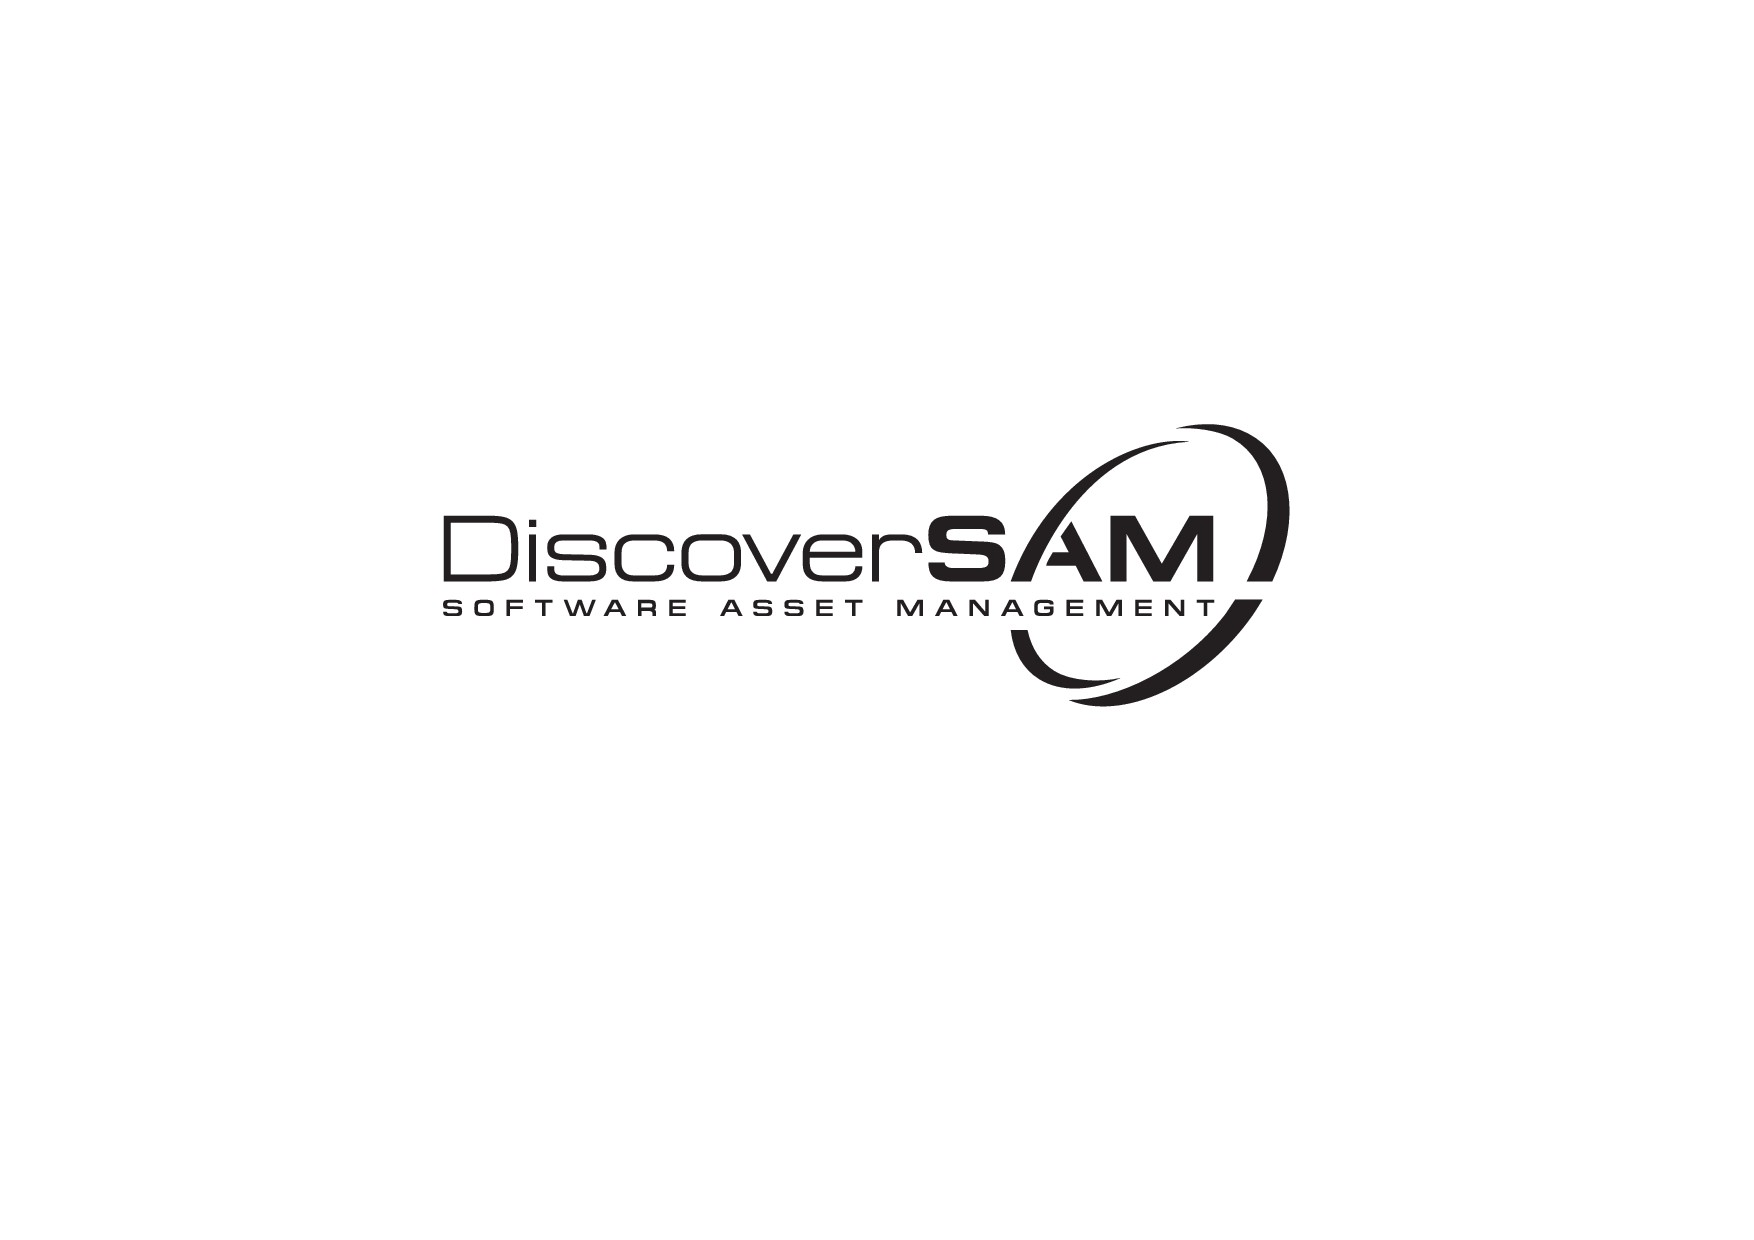 Discover SAM needs a new logo with a fresh new look!